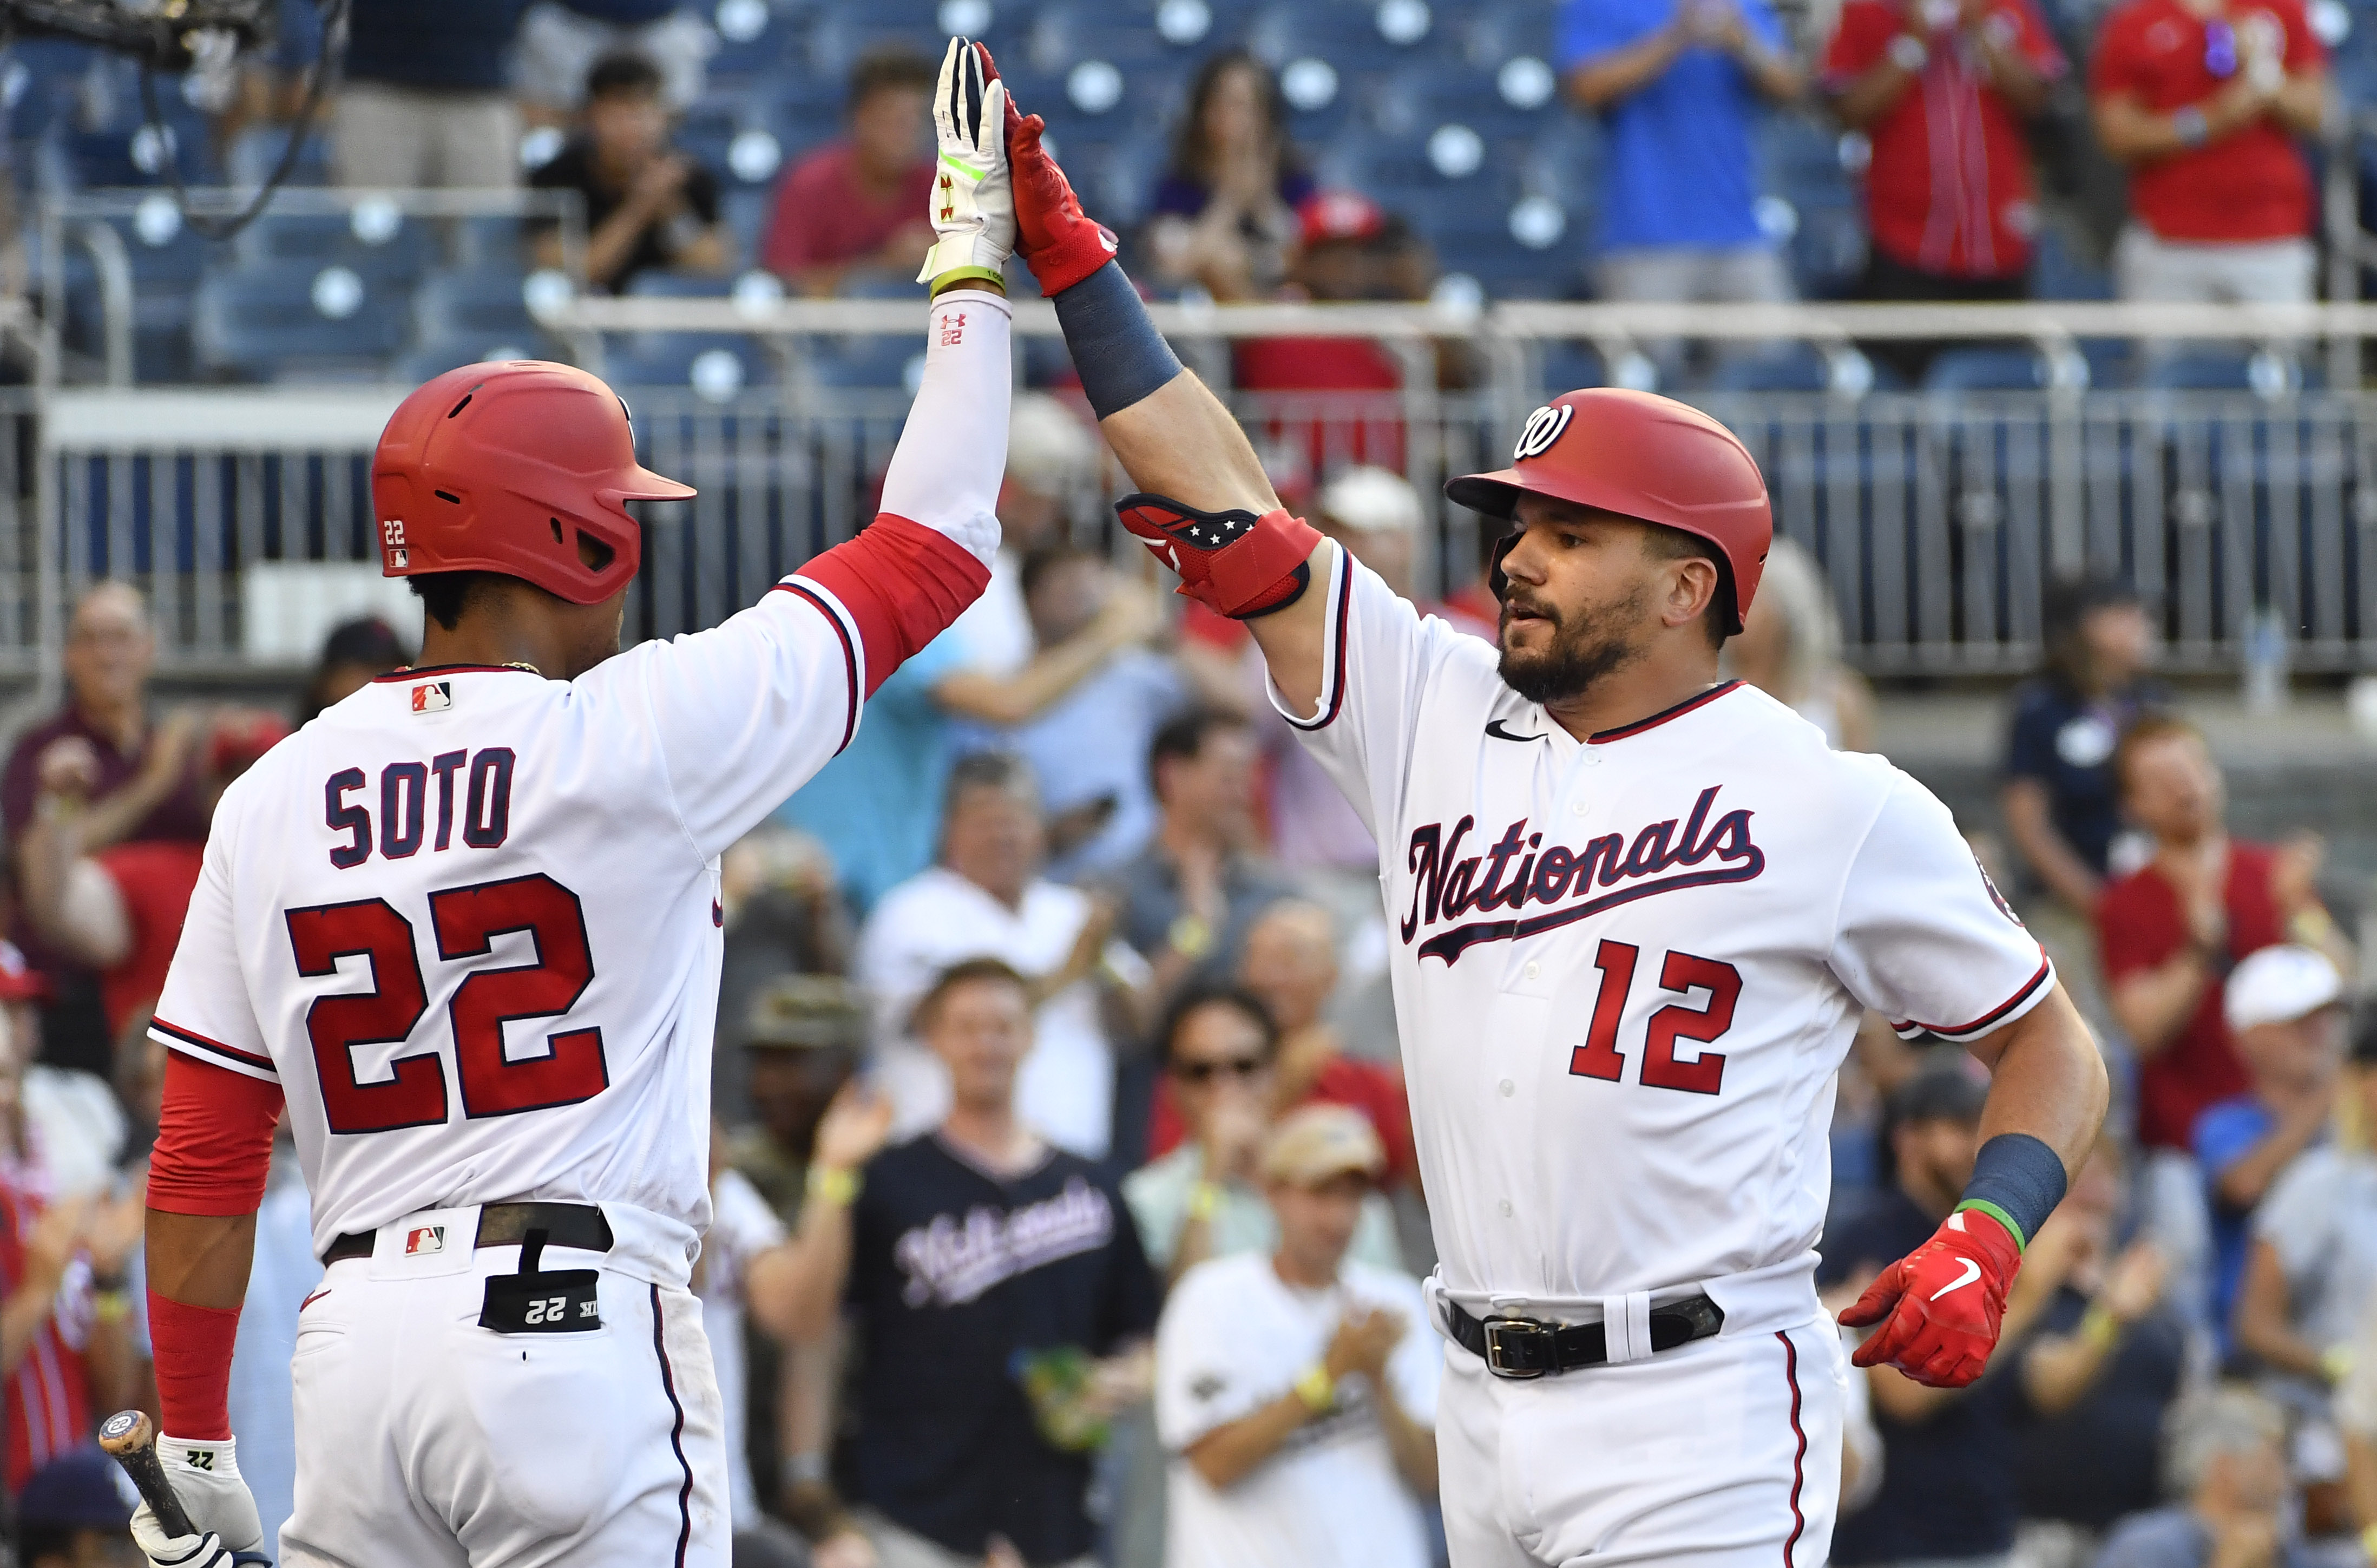 Jun 29, 2021; Washington, District of Columbia, USA; Washington Nationals left fielder Kyle Schwarber (12) is congratulated by left fielder Juan Soto (22) after hitting a solo home run during the first inning at Nationals Park. Brad Mills-USA TODAY Sports